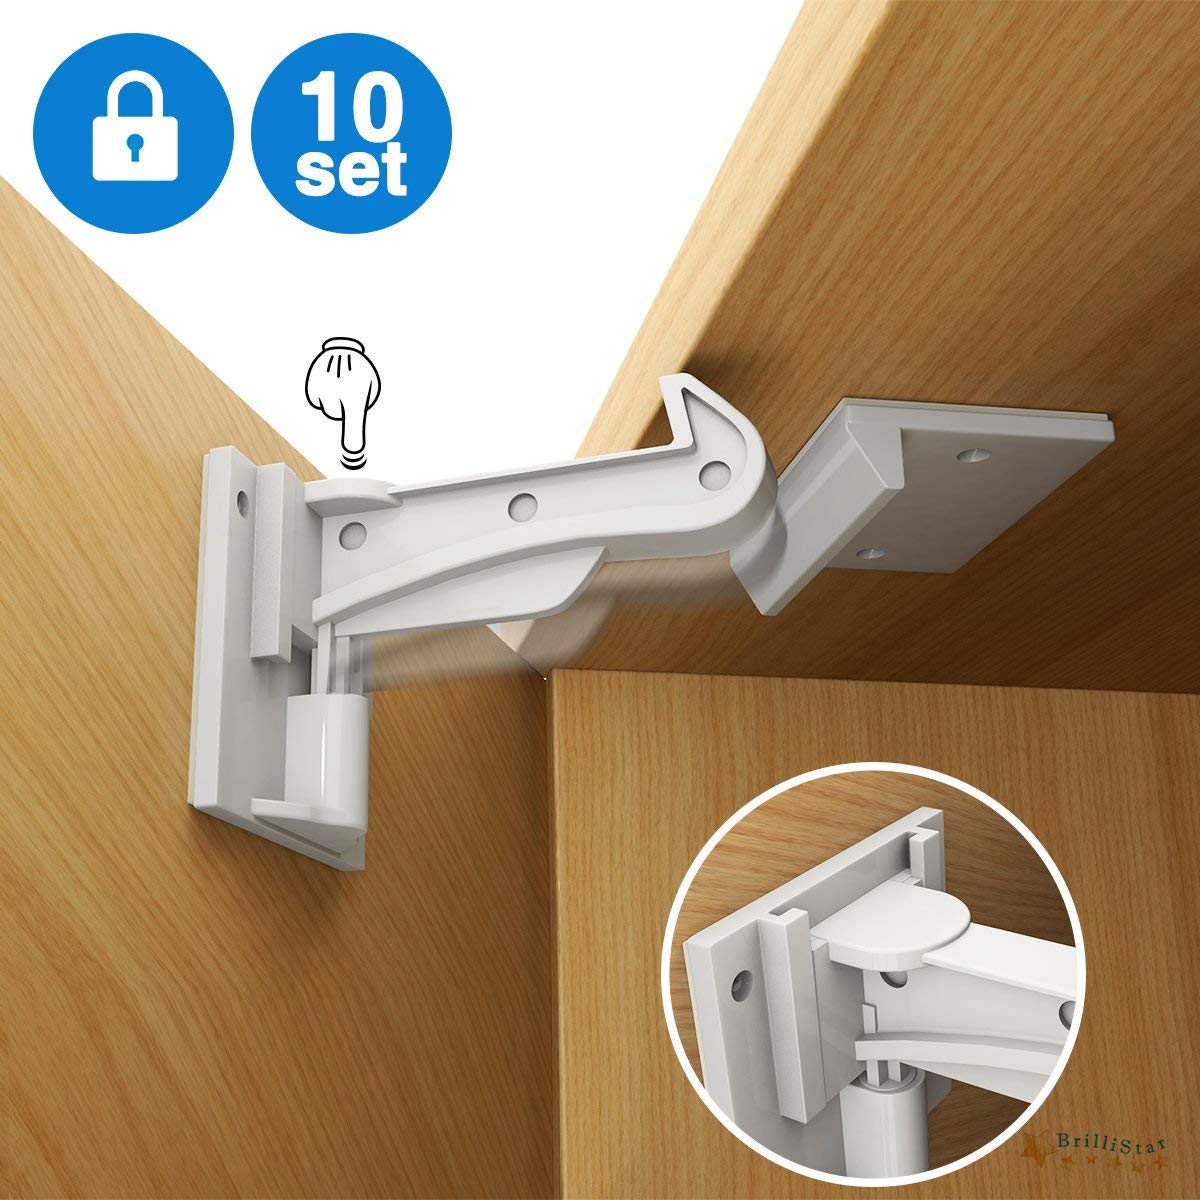 Cabinet Locks Child Safety, Slick Invisible Spring No Drill Baby Proof  Safety Latches for Kitchen & Bedroom Cabinets & Cupboards Drawers with & 3M  ...